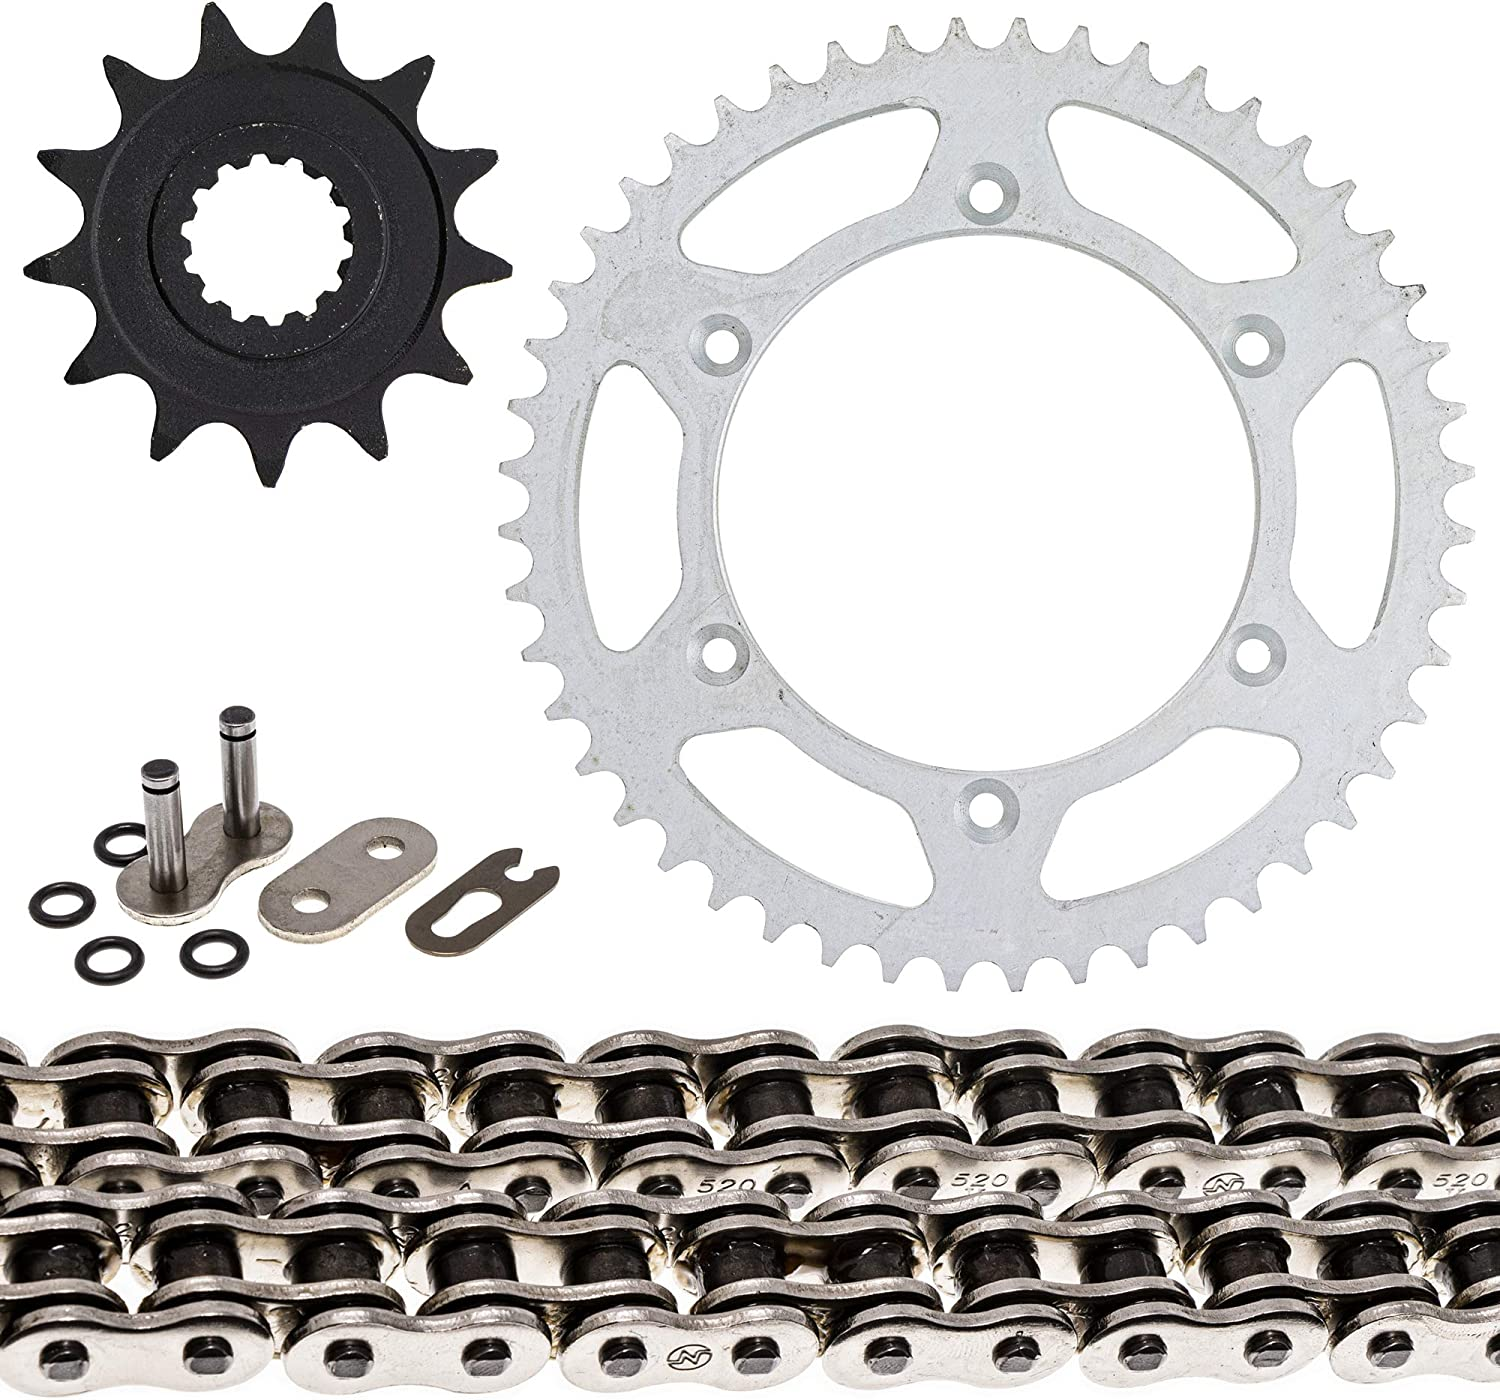 NICHE Drive Sprocket Chain Combo for Gas Gas EC 250 250E 250R 250 2T Front 13 Rear 48 Tooth 520V O-Ring 112 Links